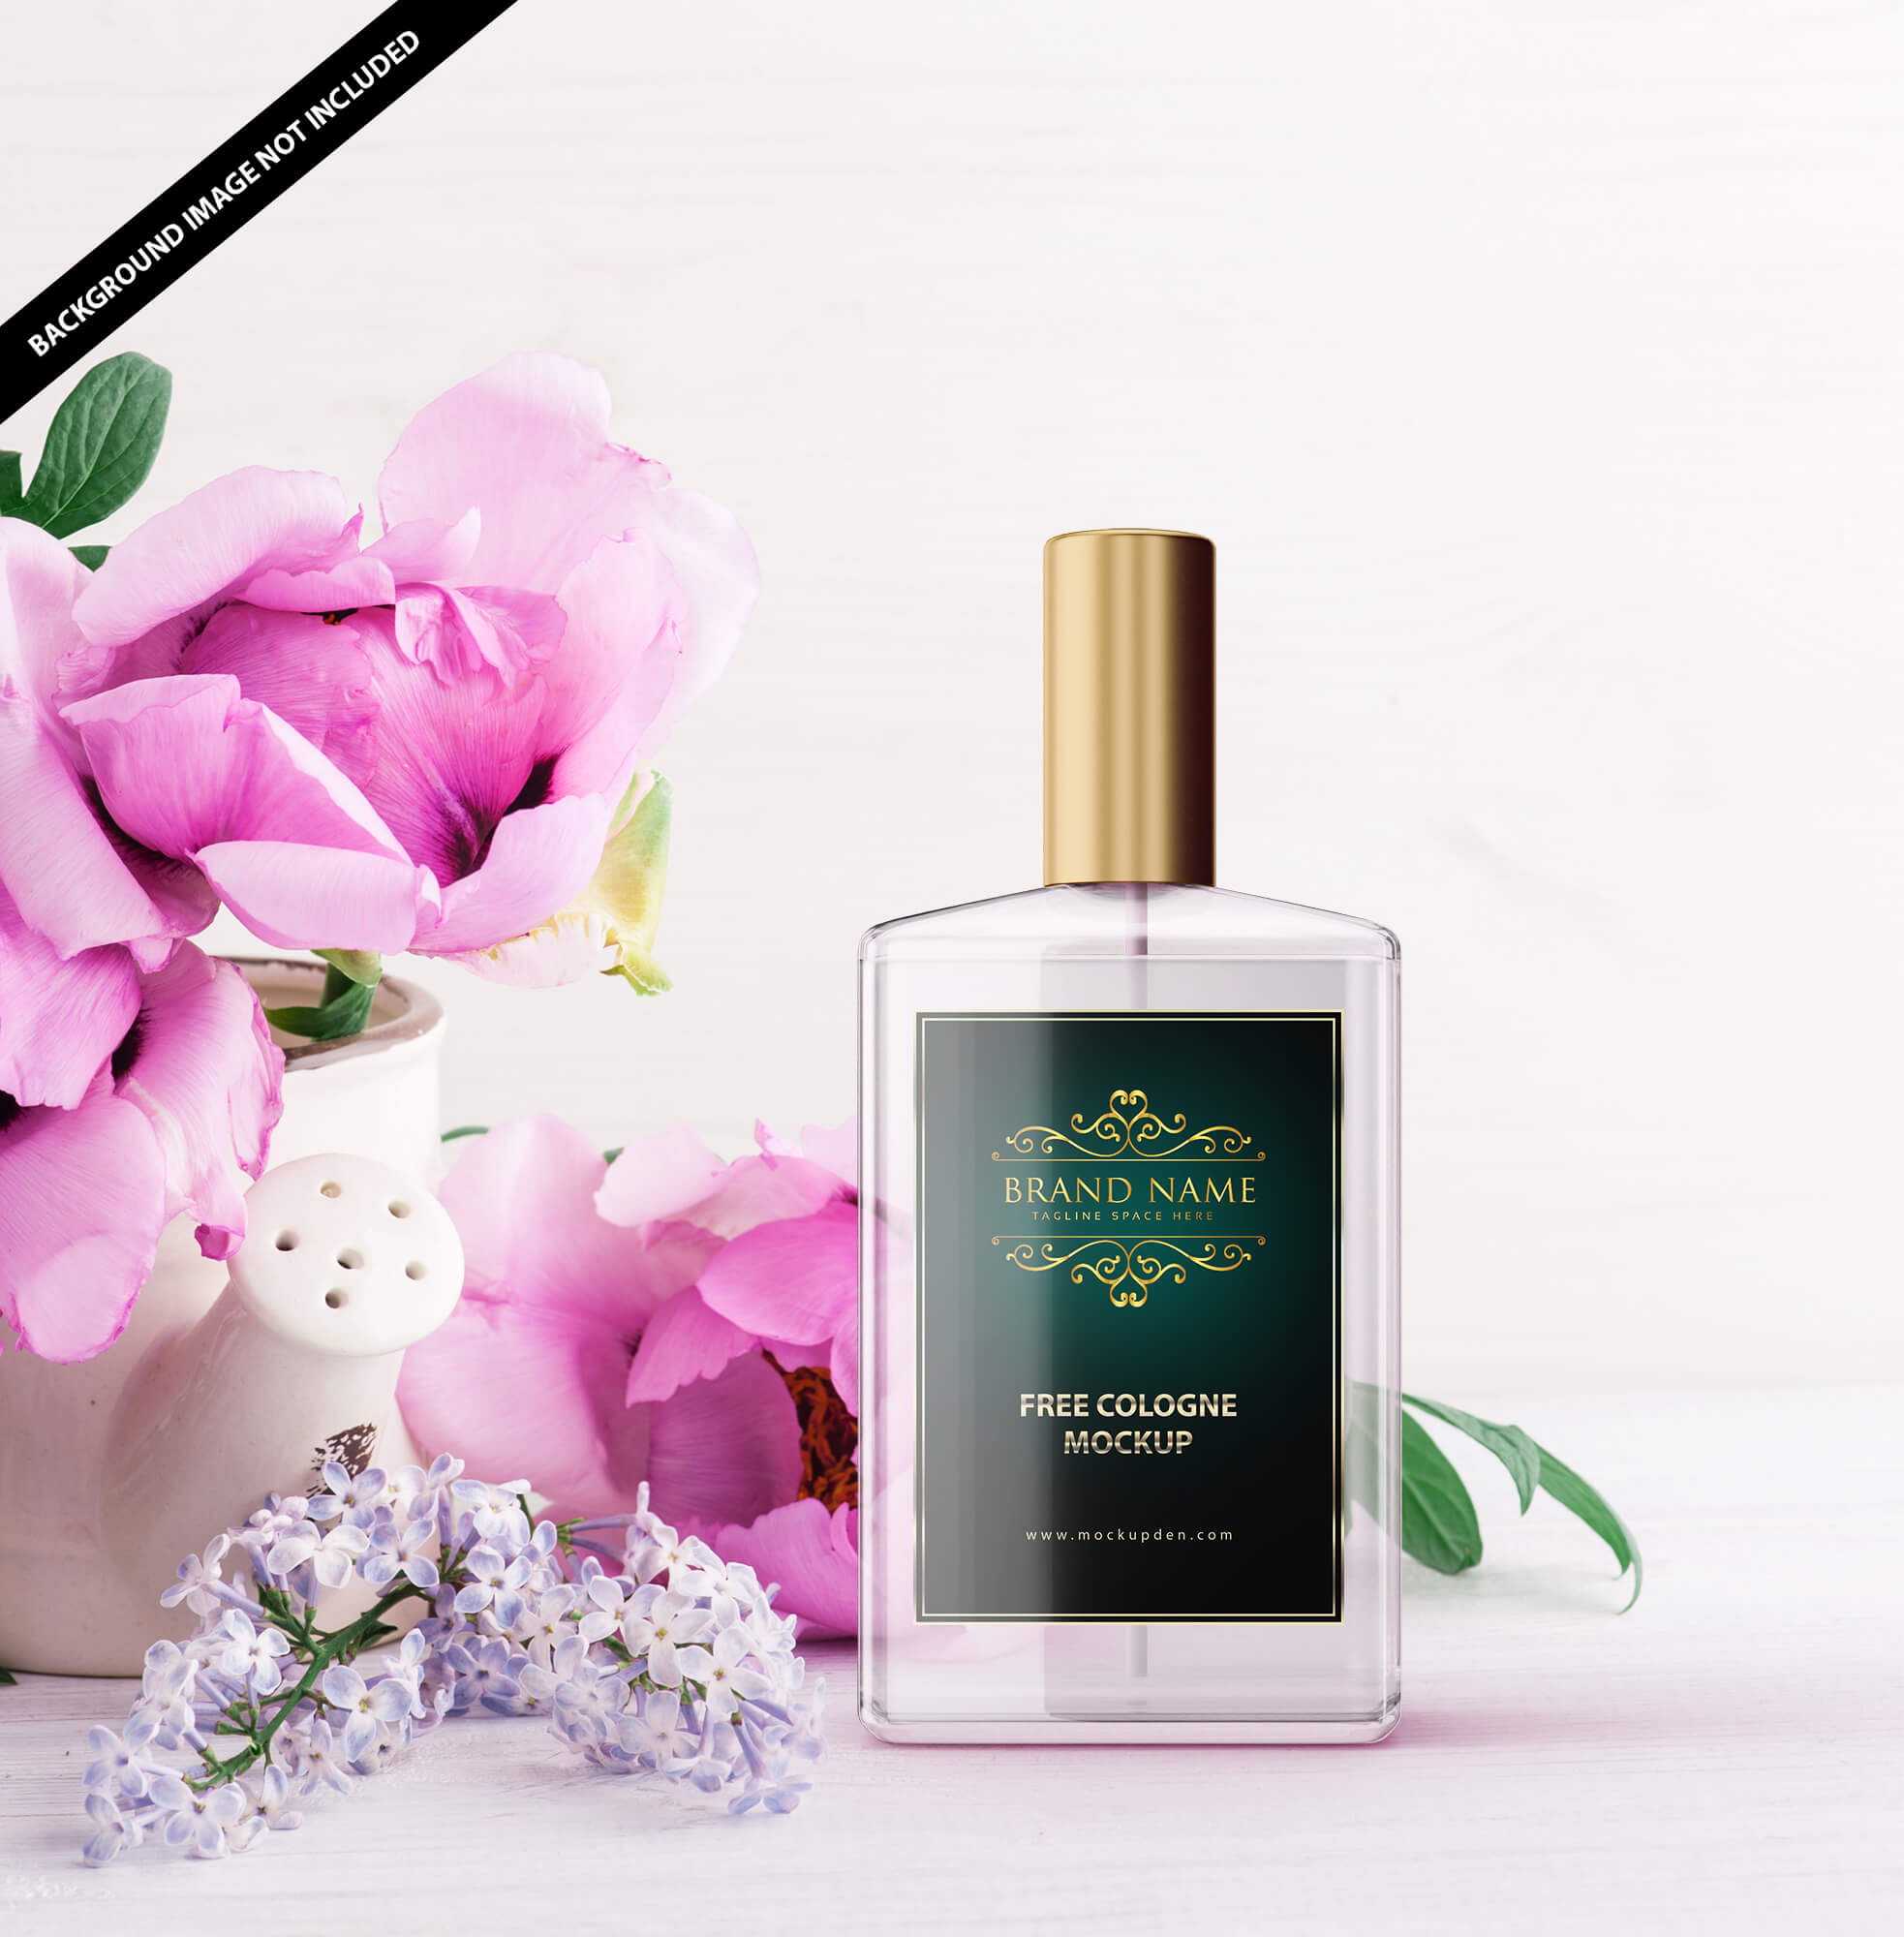 Free Cologne Mockup PSD Template